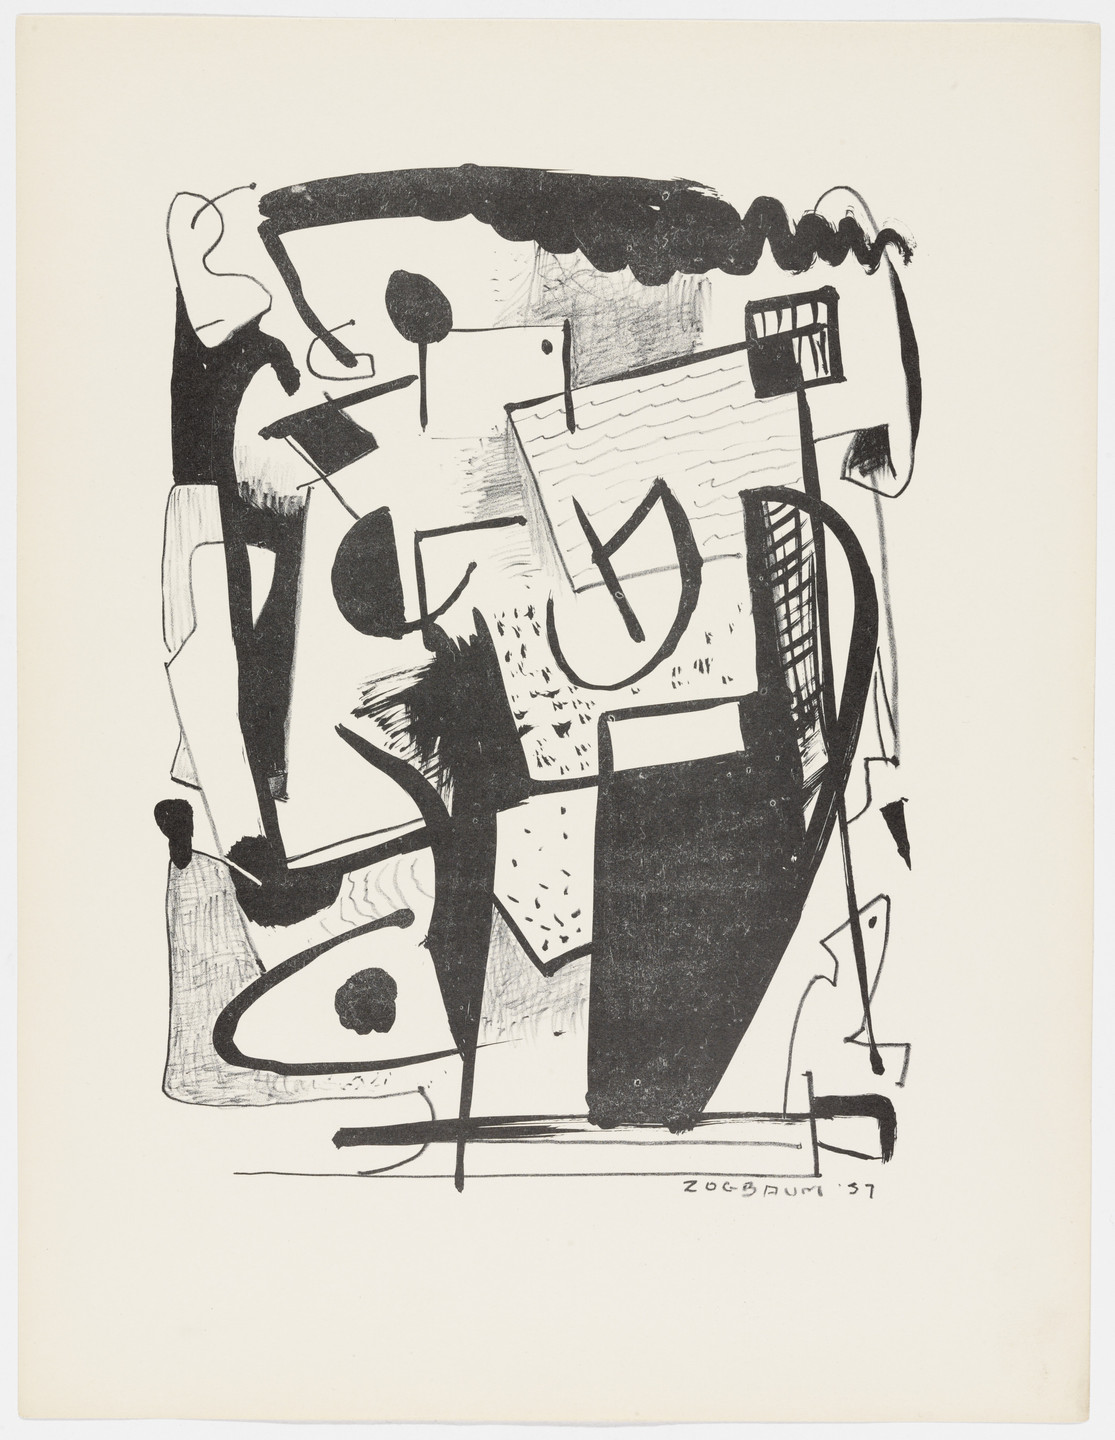 Wilfred M. Zogbaum. Untitled from American Abstract Artists. 1937